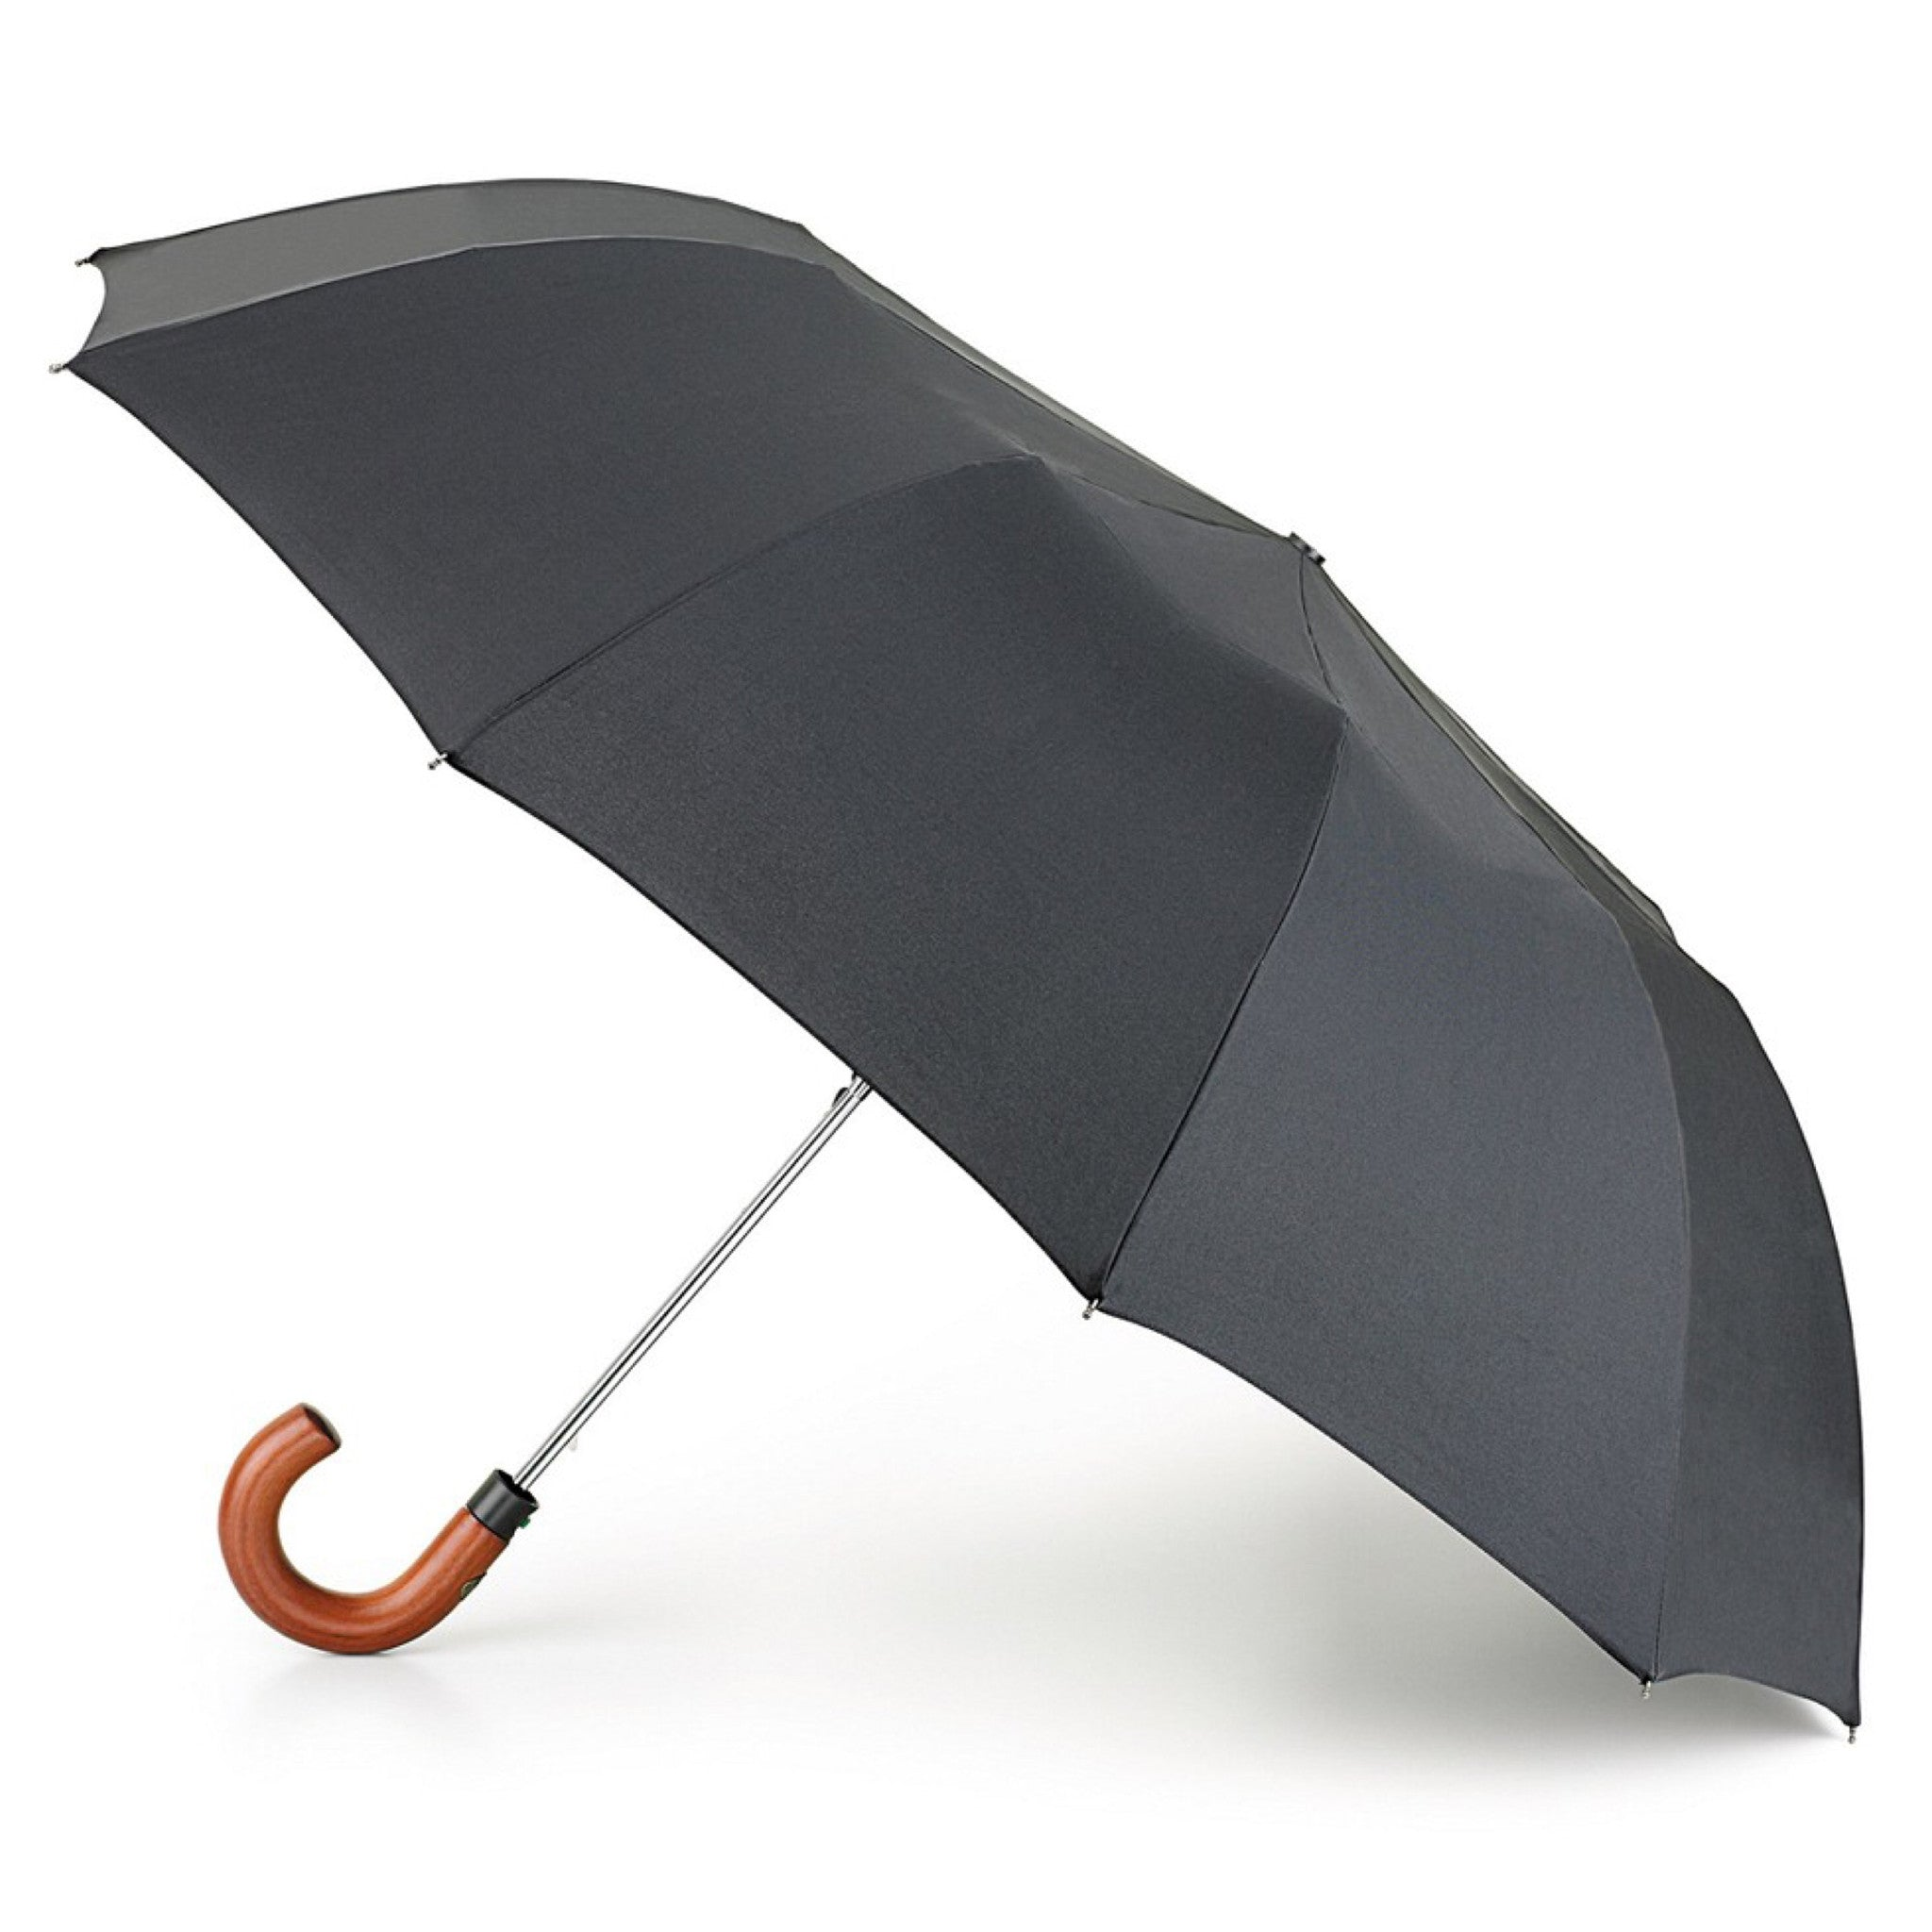 Magnum-1 Auto Umbrella - Black